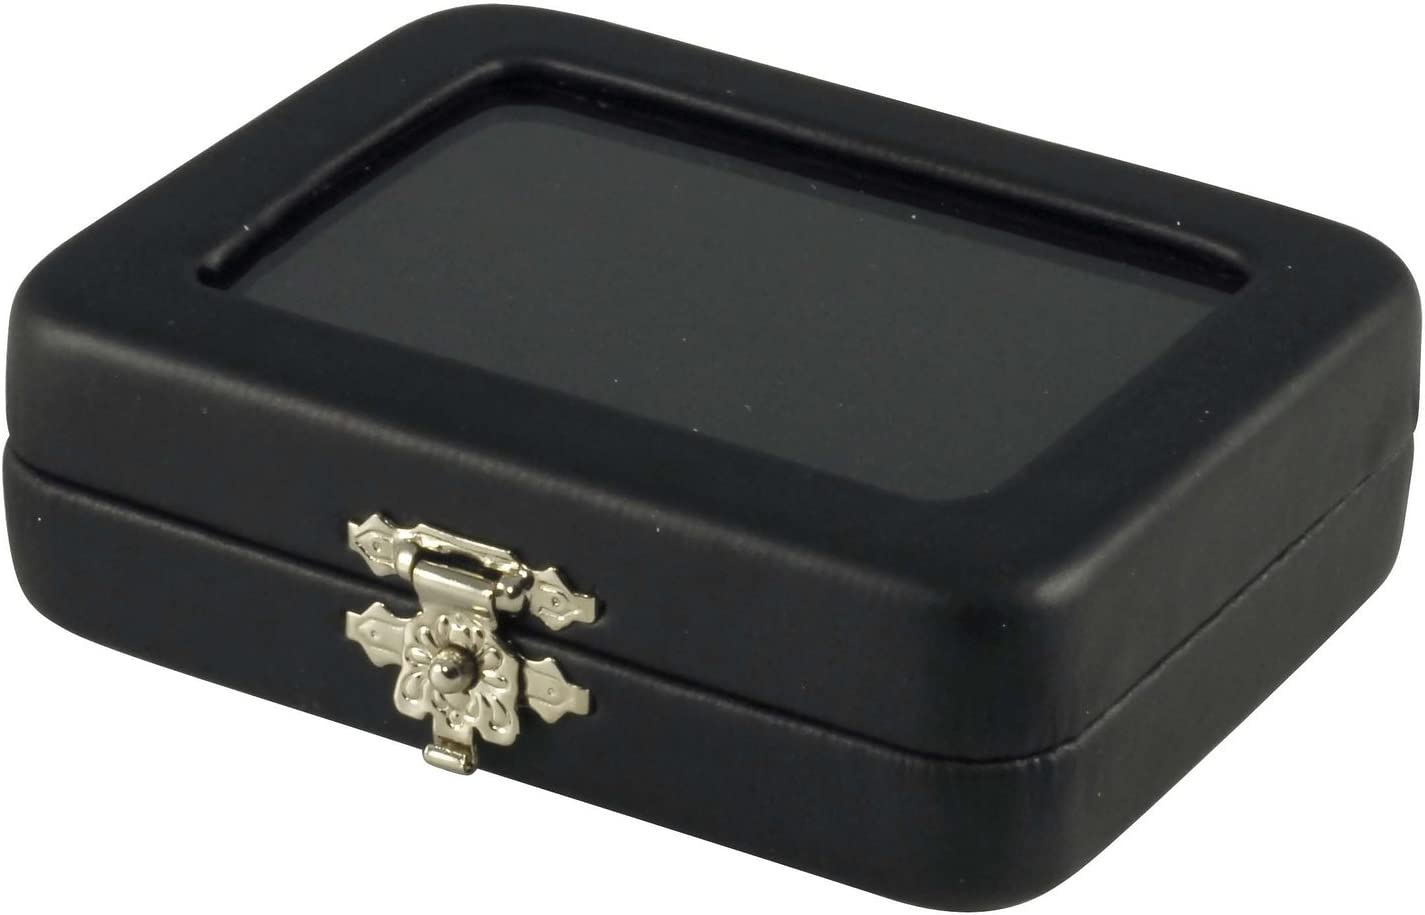 Novel Box Black Leatherette Glass Top Gem Box Loose Stone Jewelry Case Display with ClaspReversible Pad - White & Black